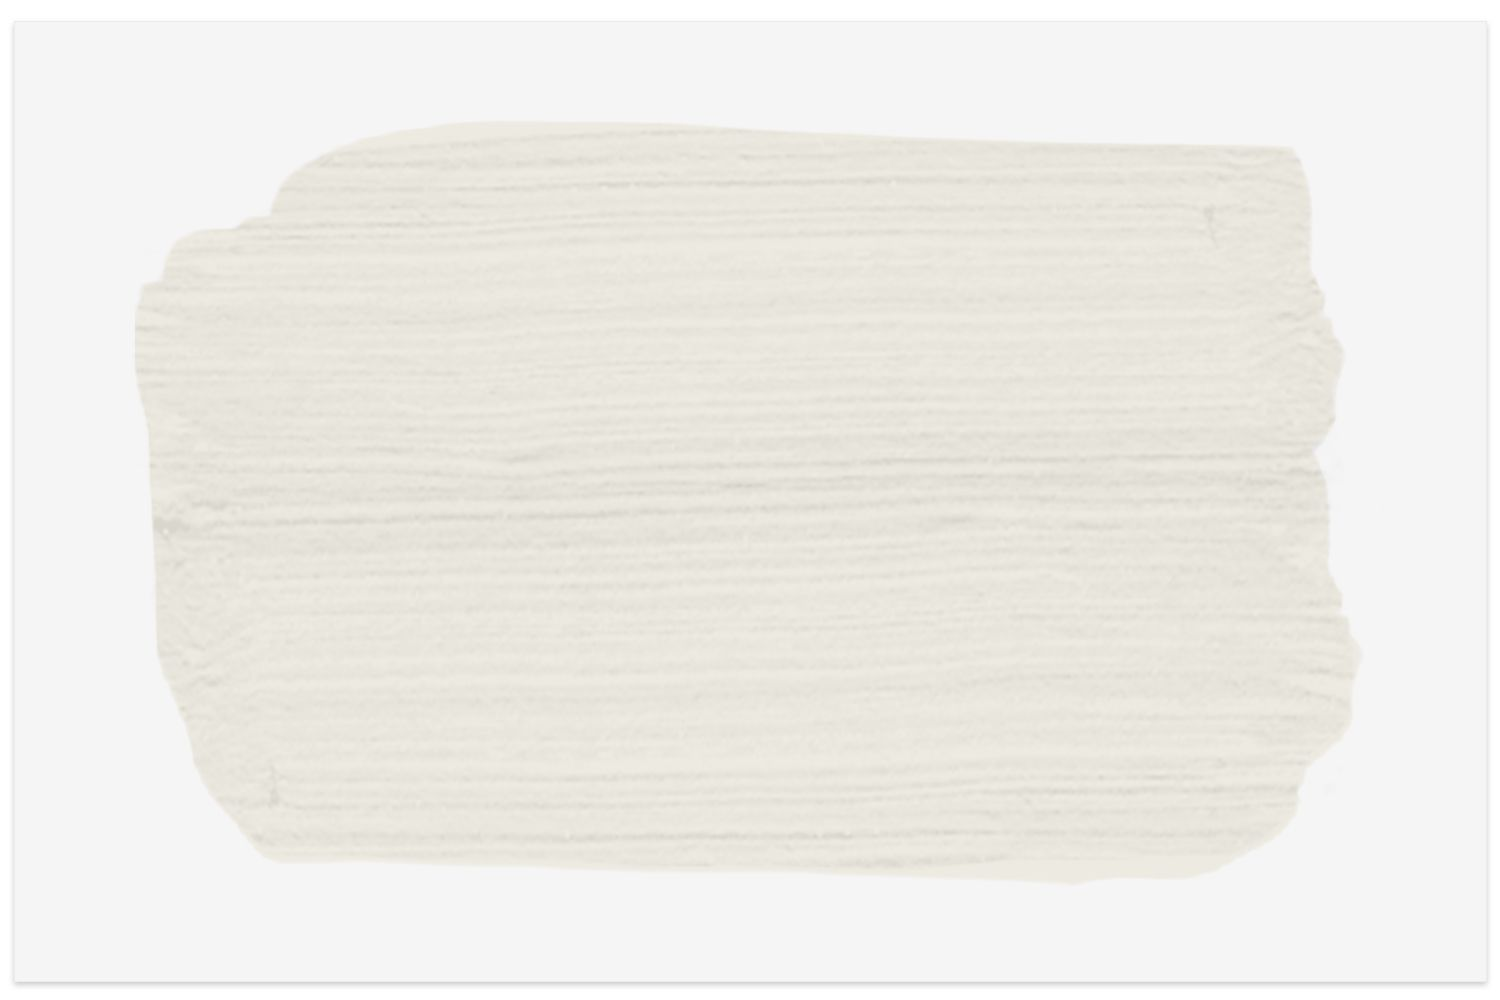 Sherwin-Williams Alabaster SW7008 paint swatch